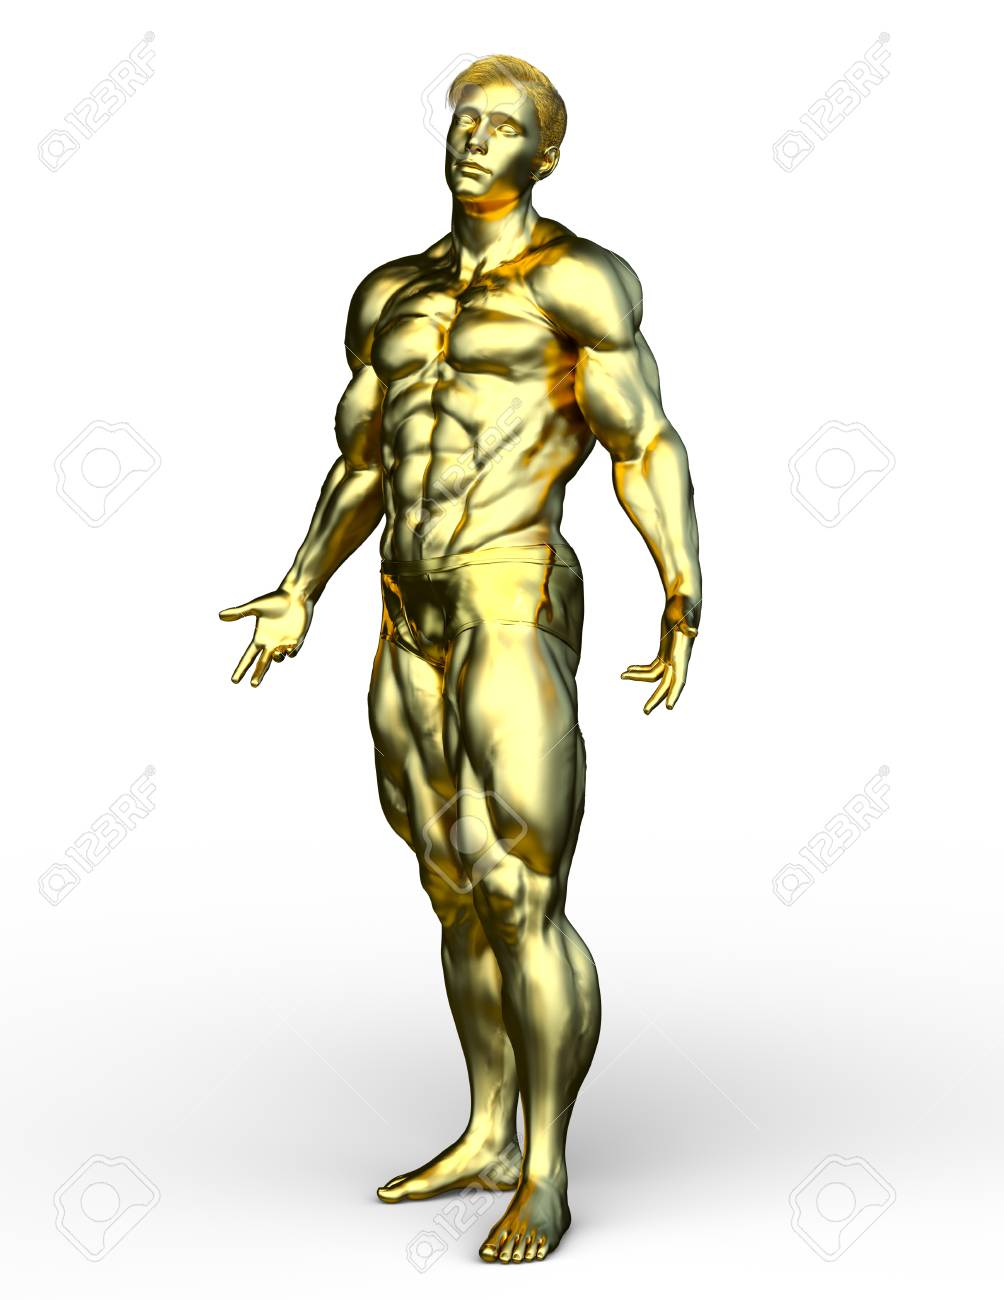 Man Of Gold : Rendering, Statue, Stock, Photo,, Picture, Royalty, Image., Image, 113776903.